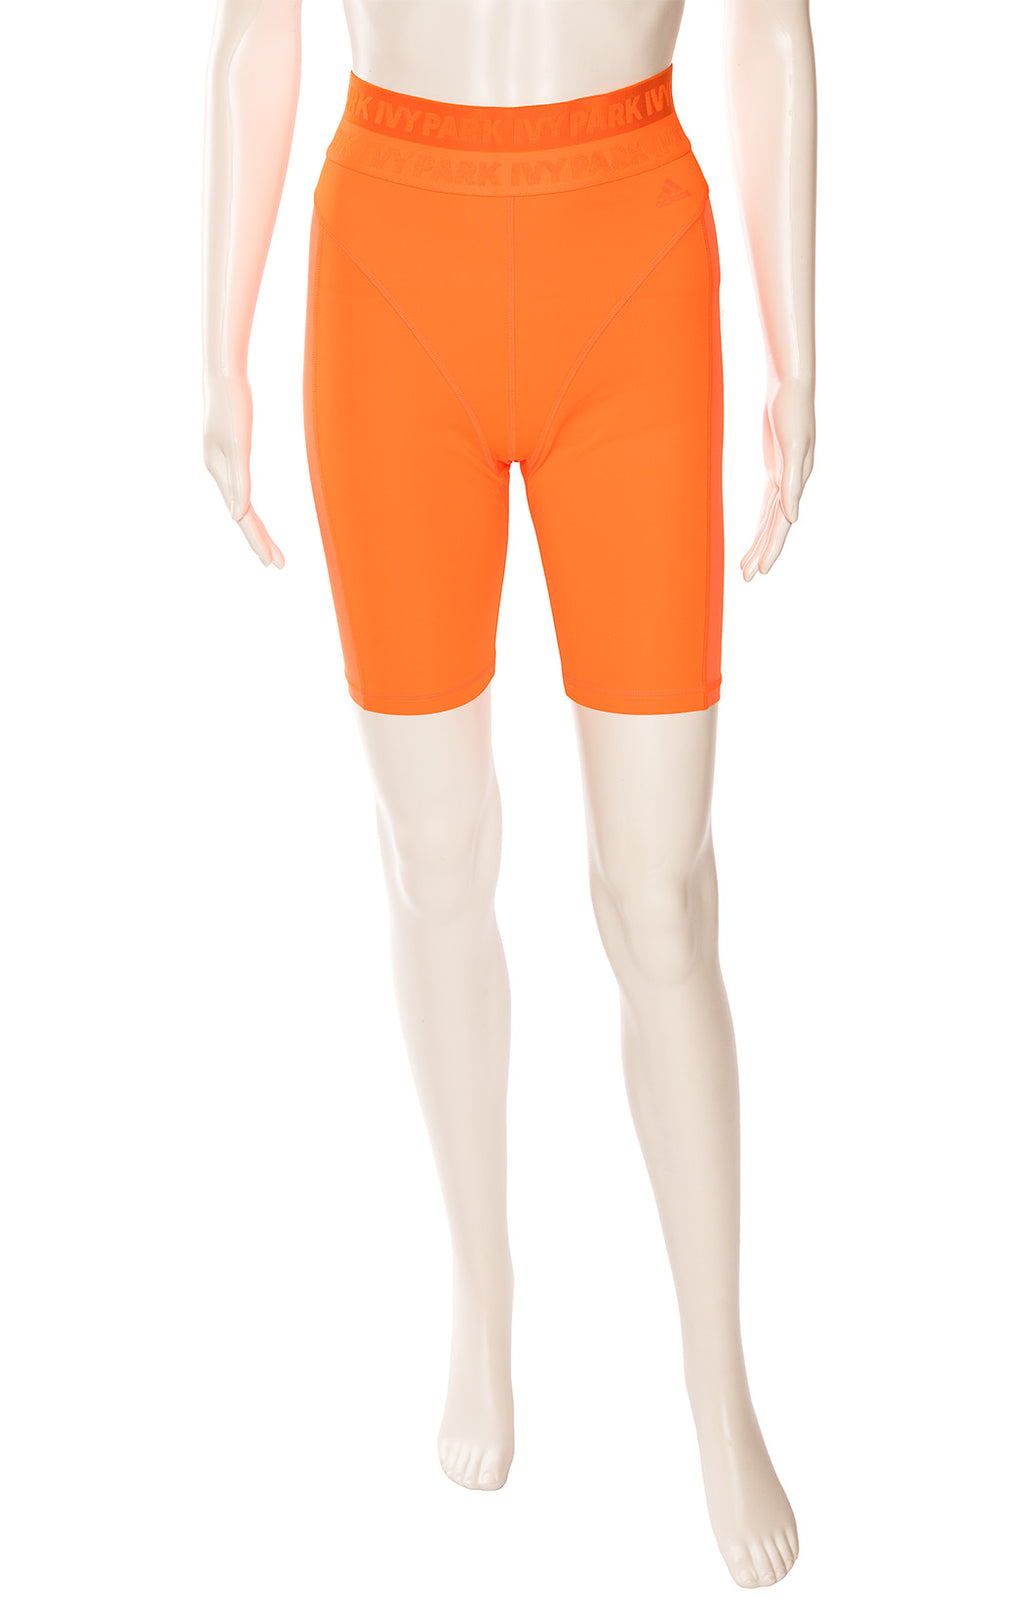 Neon orange form-fitting shorts